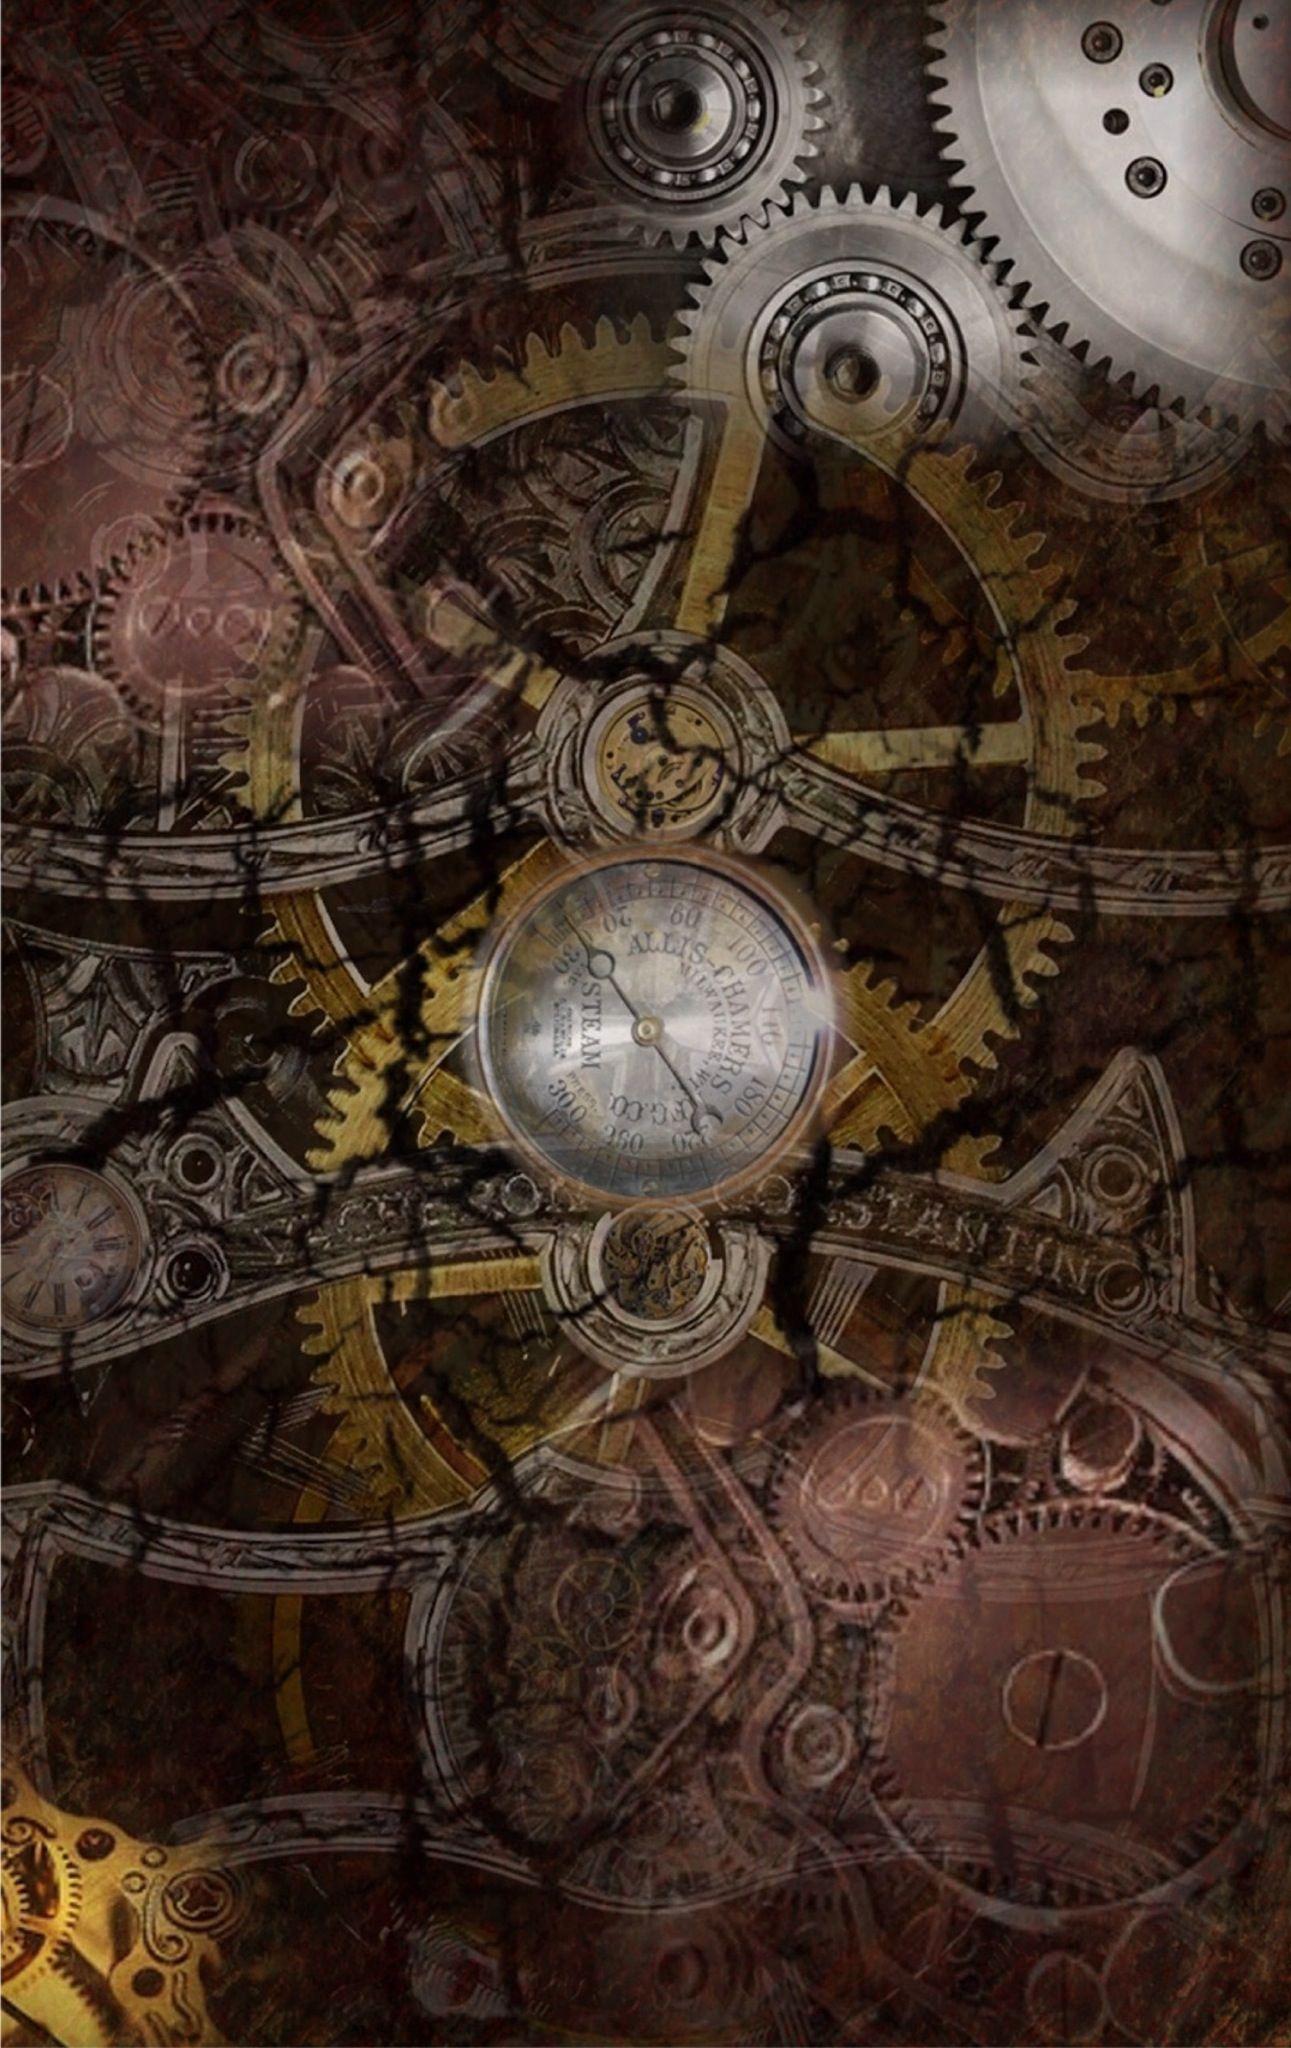 Steampunk Iphone Wallpapers Top Free Steampunk Iphone